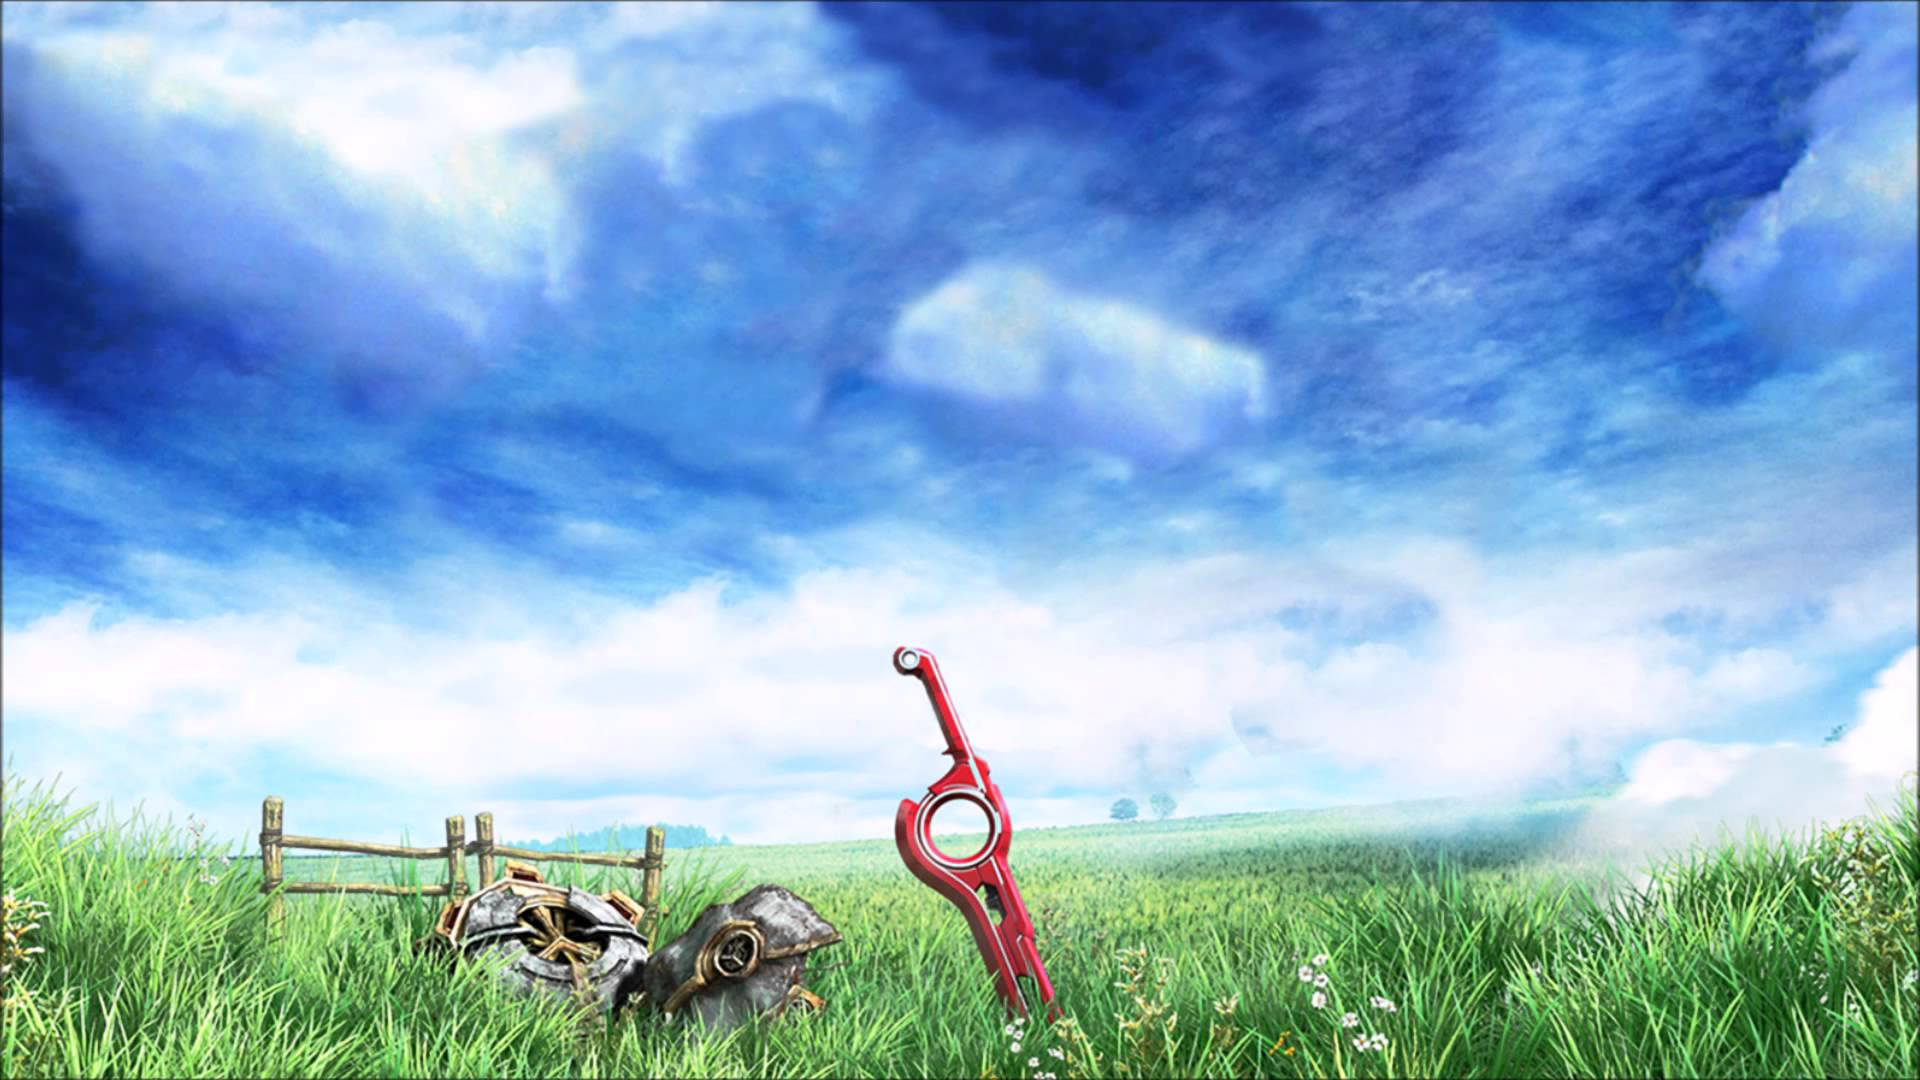 xenoblade-chronicles-hd-wallpapers-33925-7818139